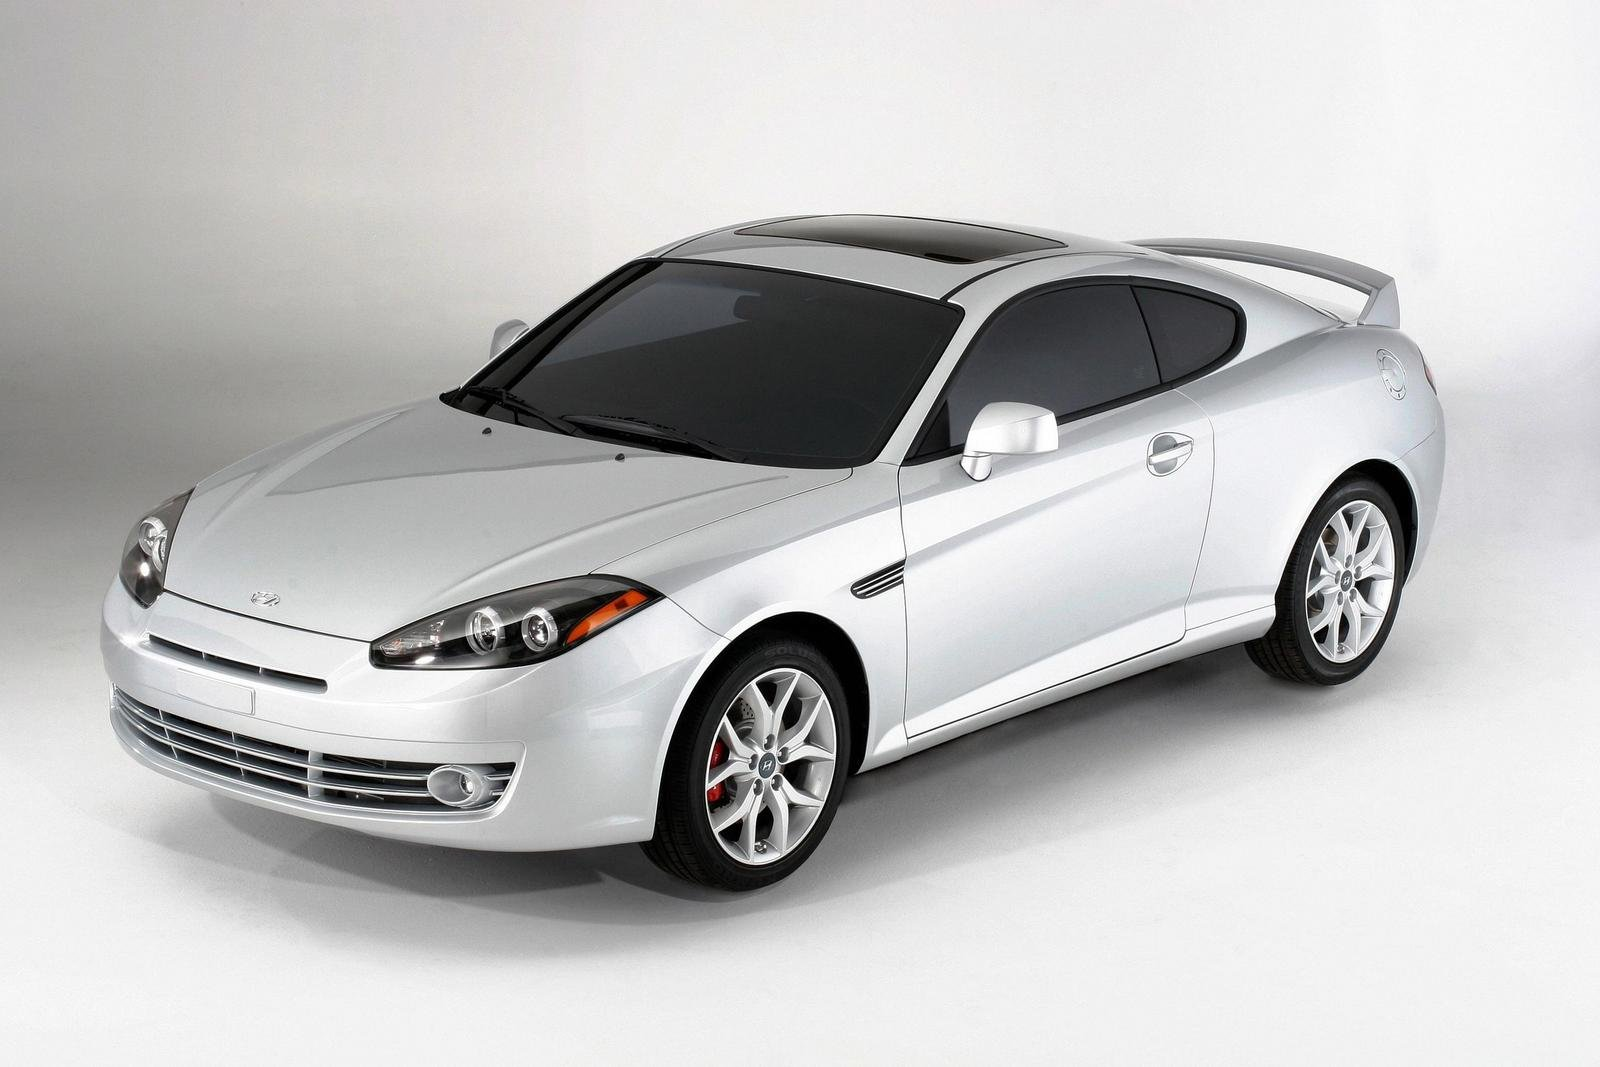 2007 hyundai tiburon review top speed. Black Bedroom Furniture Sets. Home Design Ideas